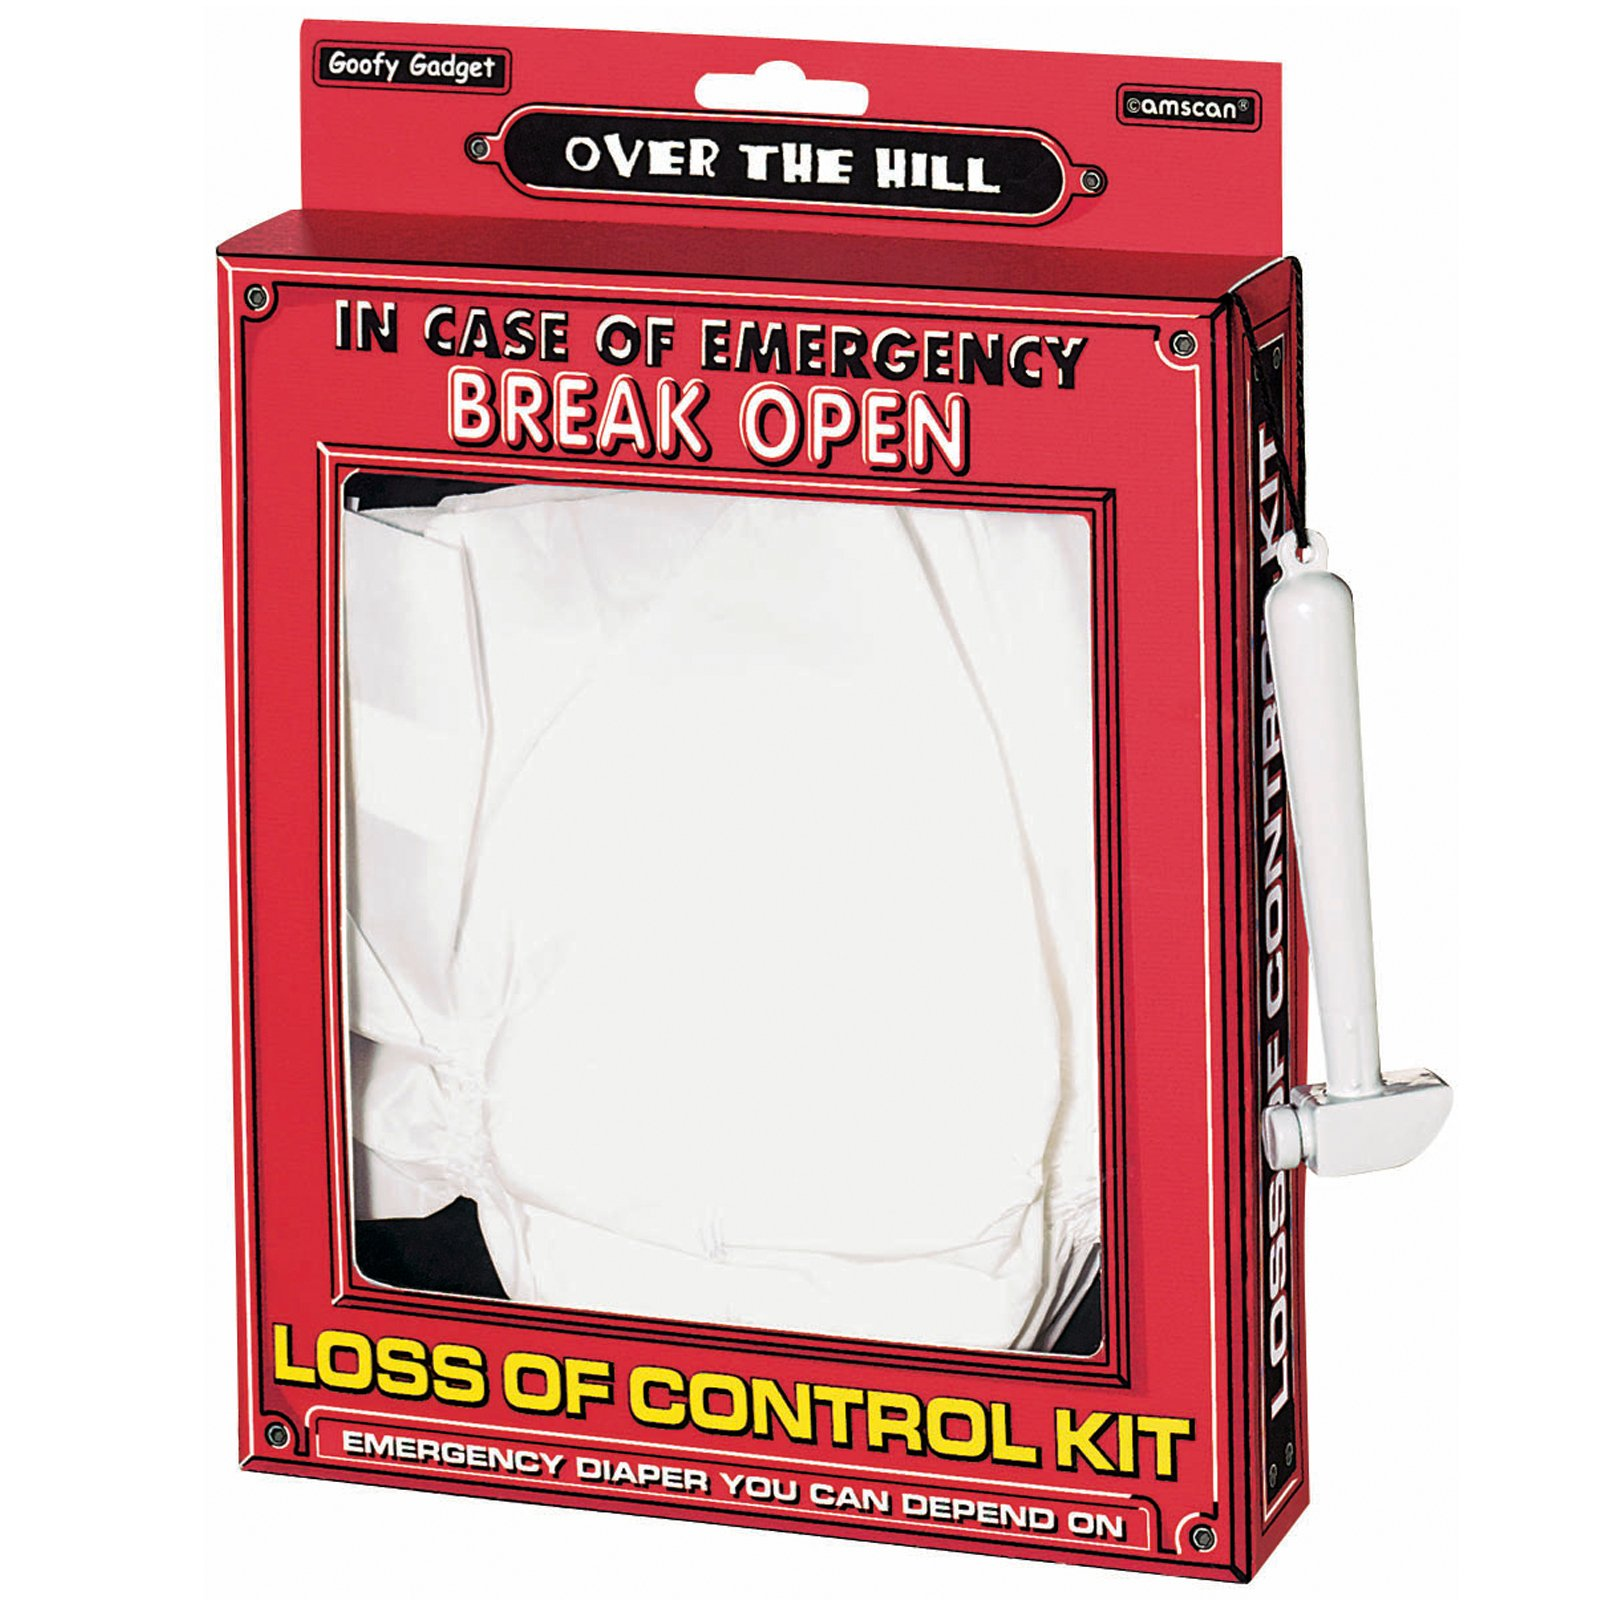 Over the Hill Emergency Loss of Control Kit